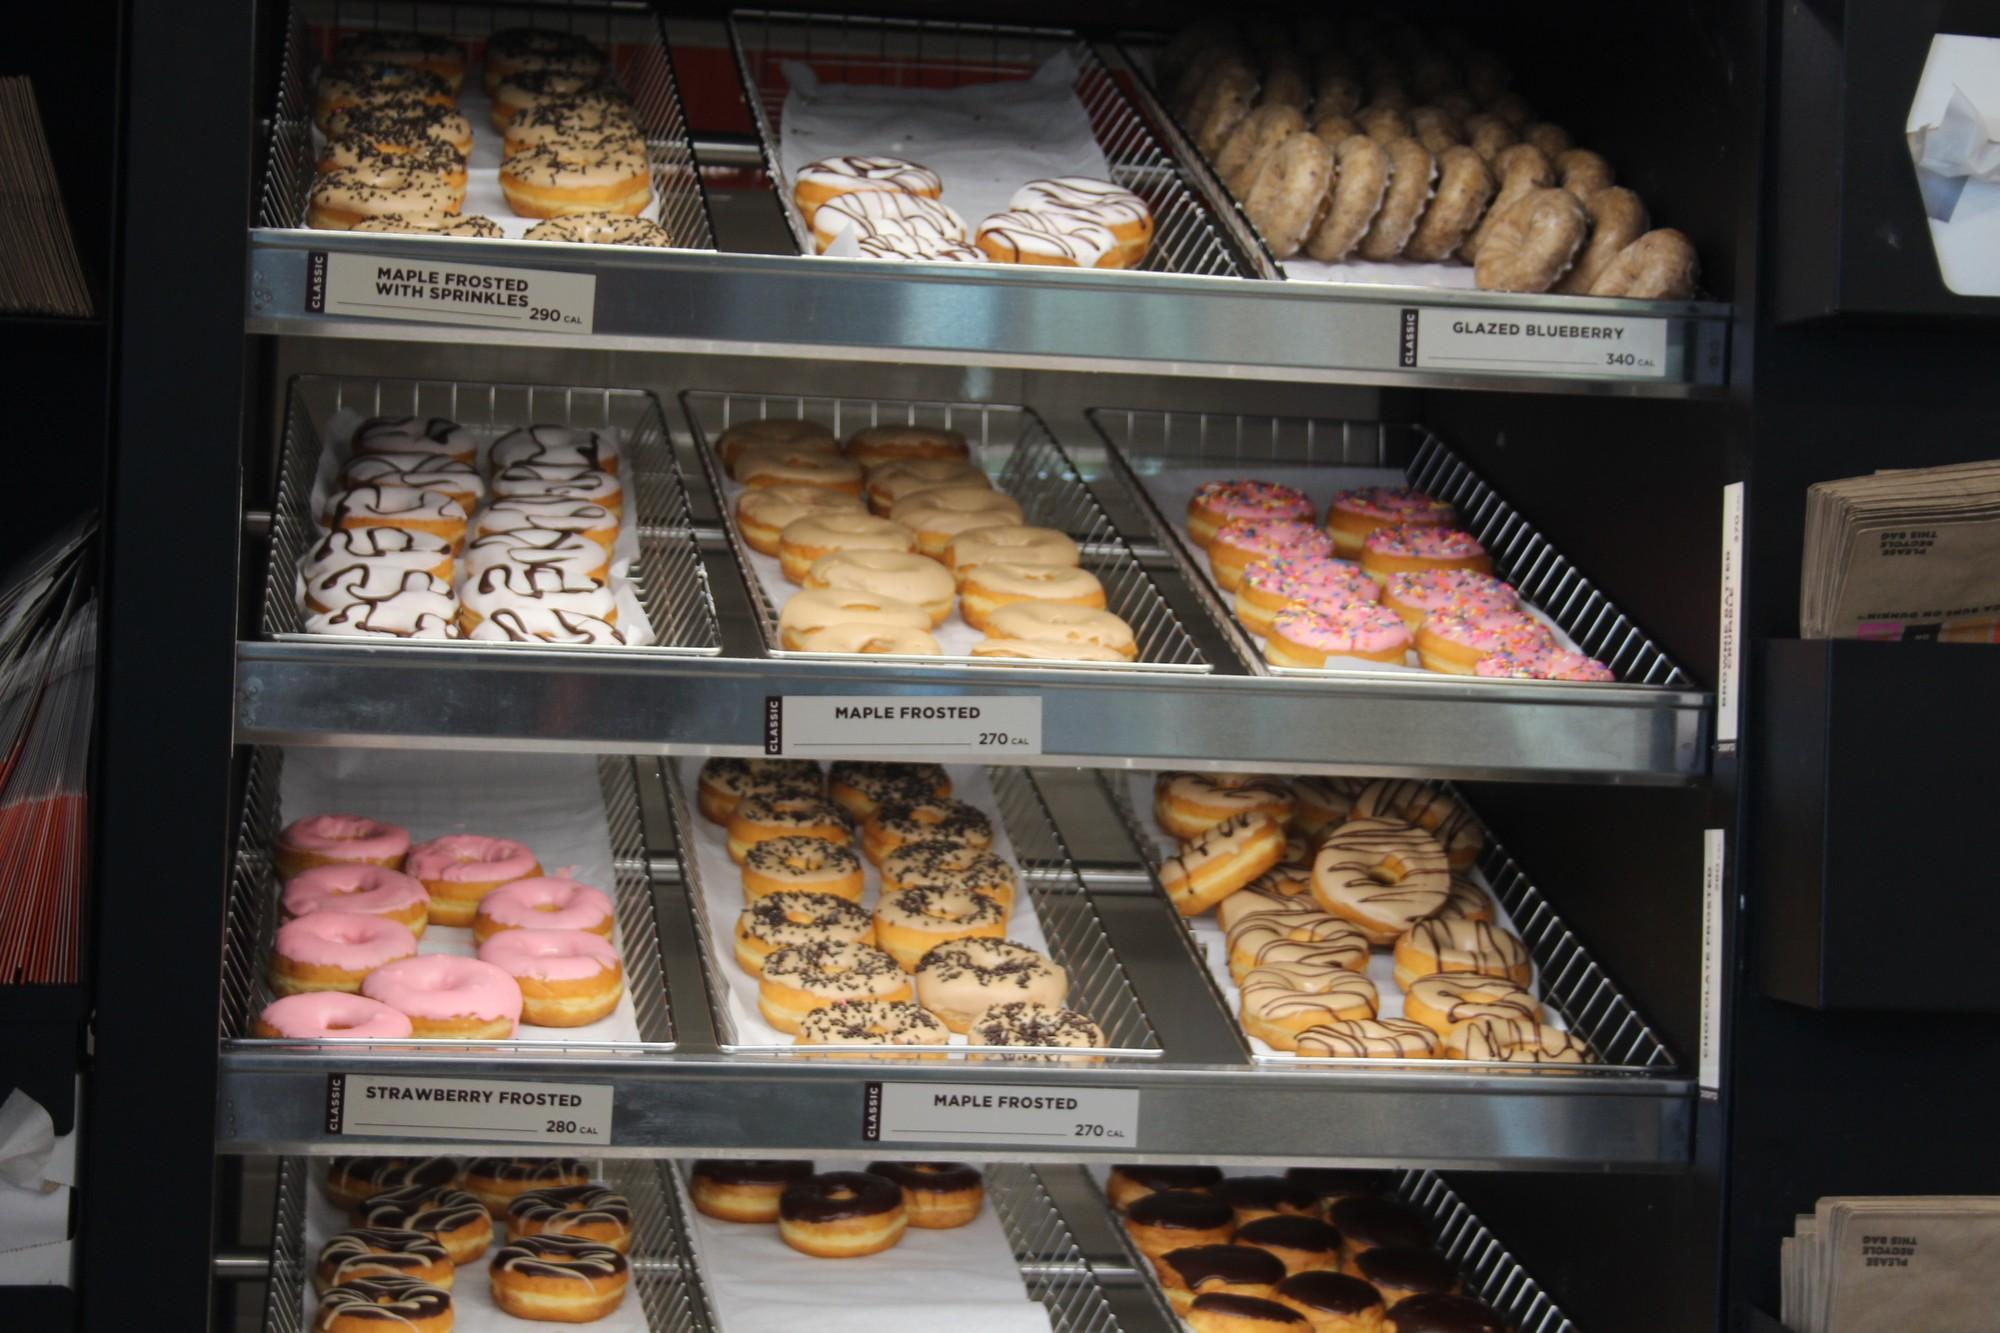 Dunkin Donuts have a big assortment of donuts available for order.